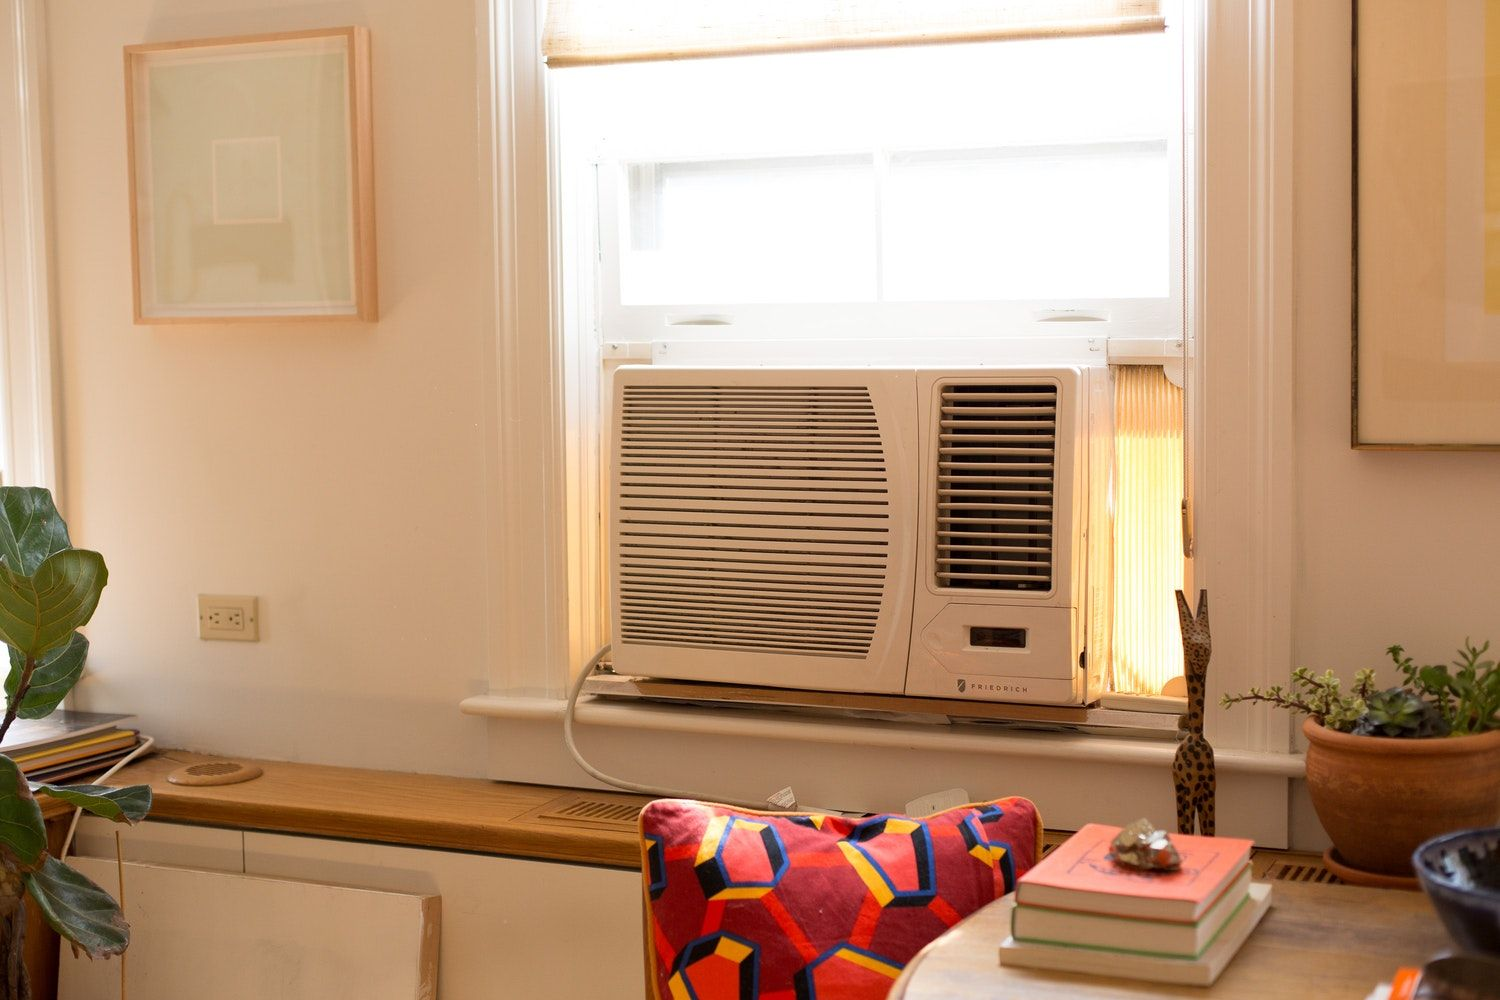 A Super Simple Way to Disguise a Window Air Conditioner in